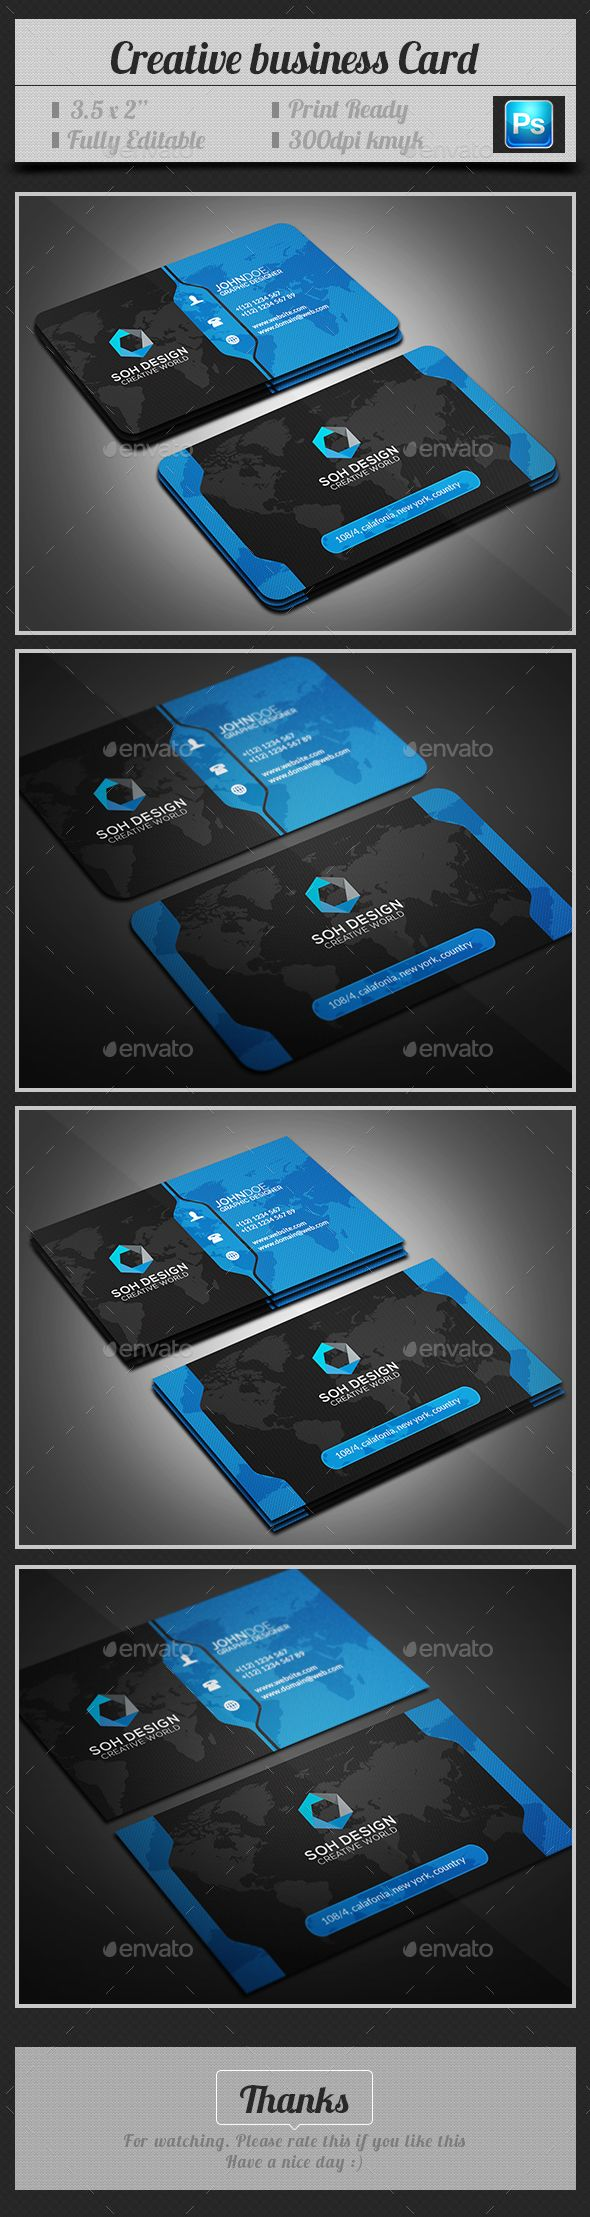 366 best business card design images on pinterest business card creative business card reheart Images